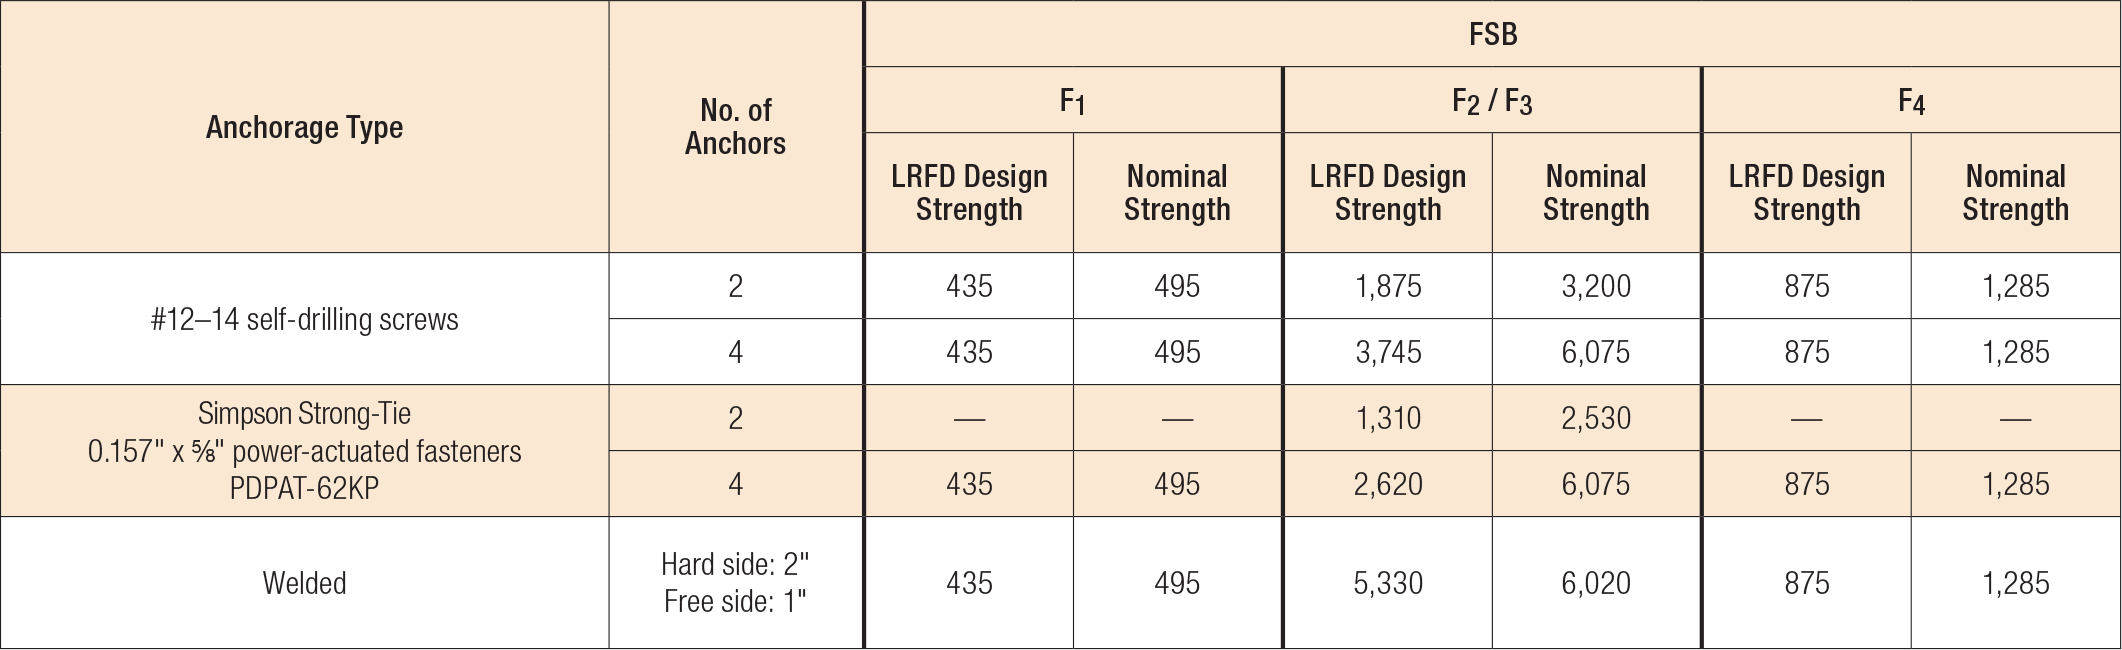 Load Table - Anchor Values